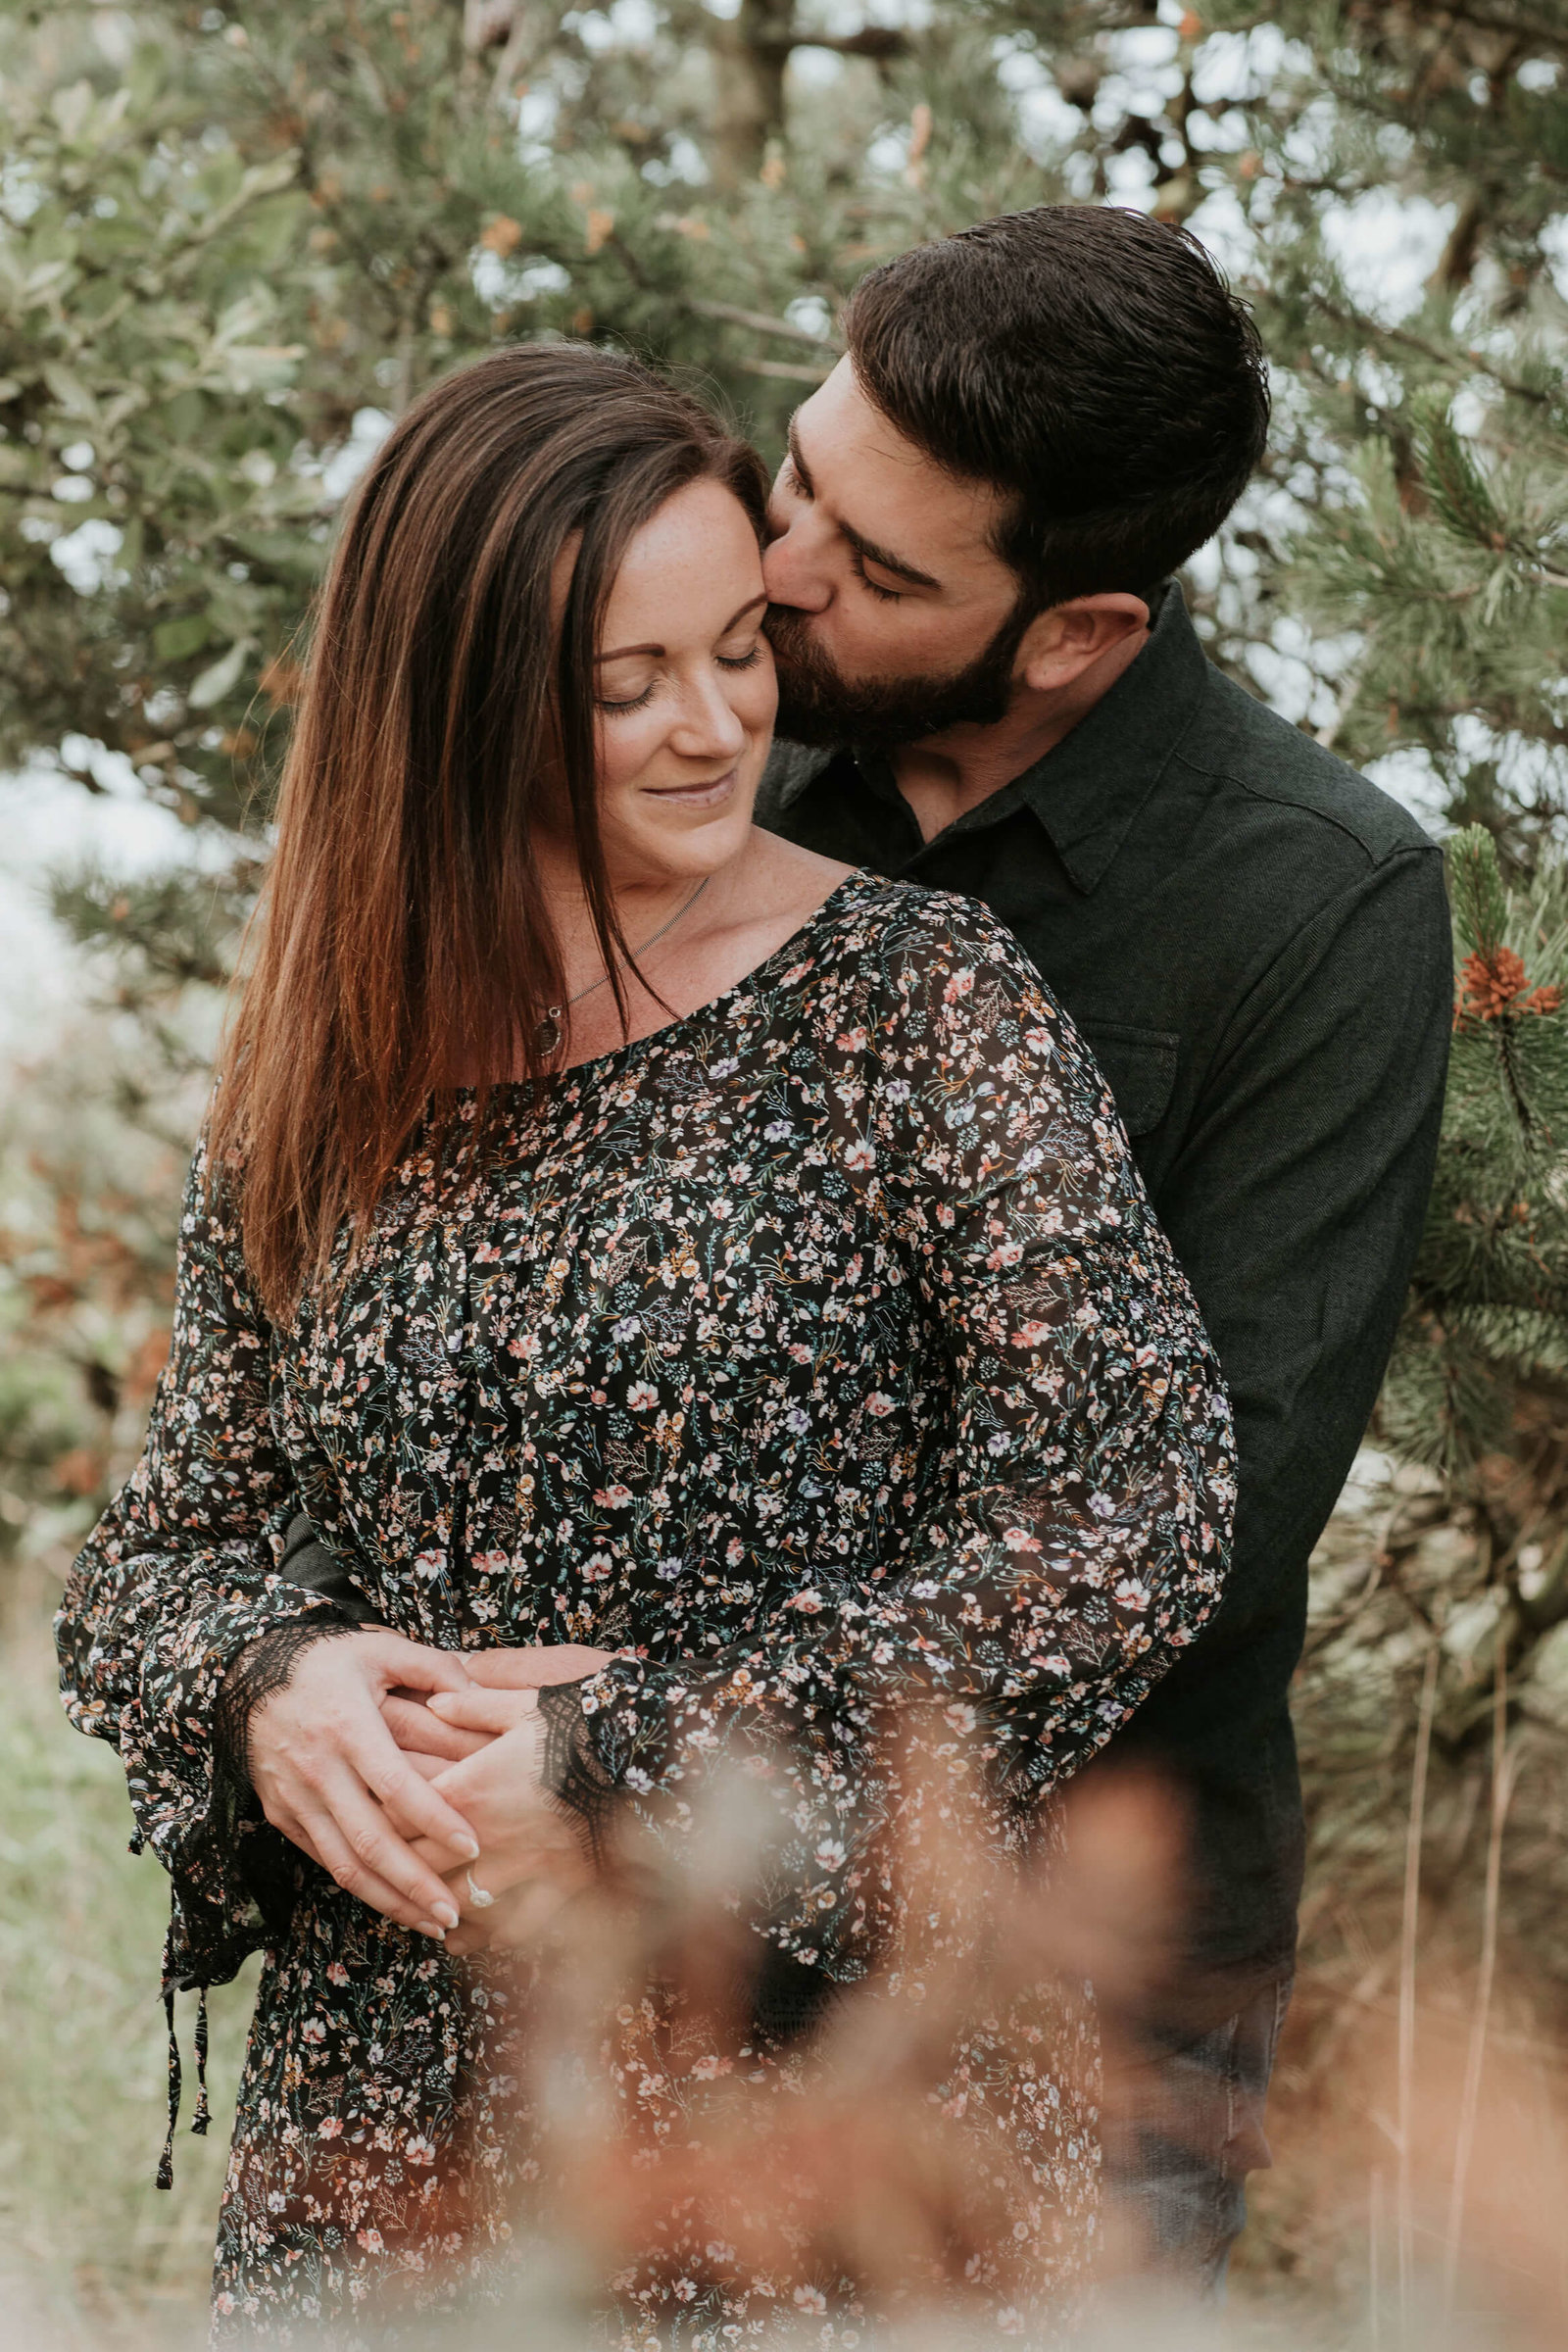 Discovery-Park-Engagement-Chelsey+Troy-by-Adina-Preston-Photography-2019-4